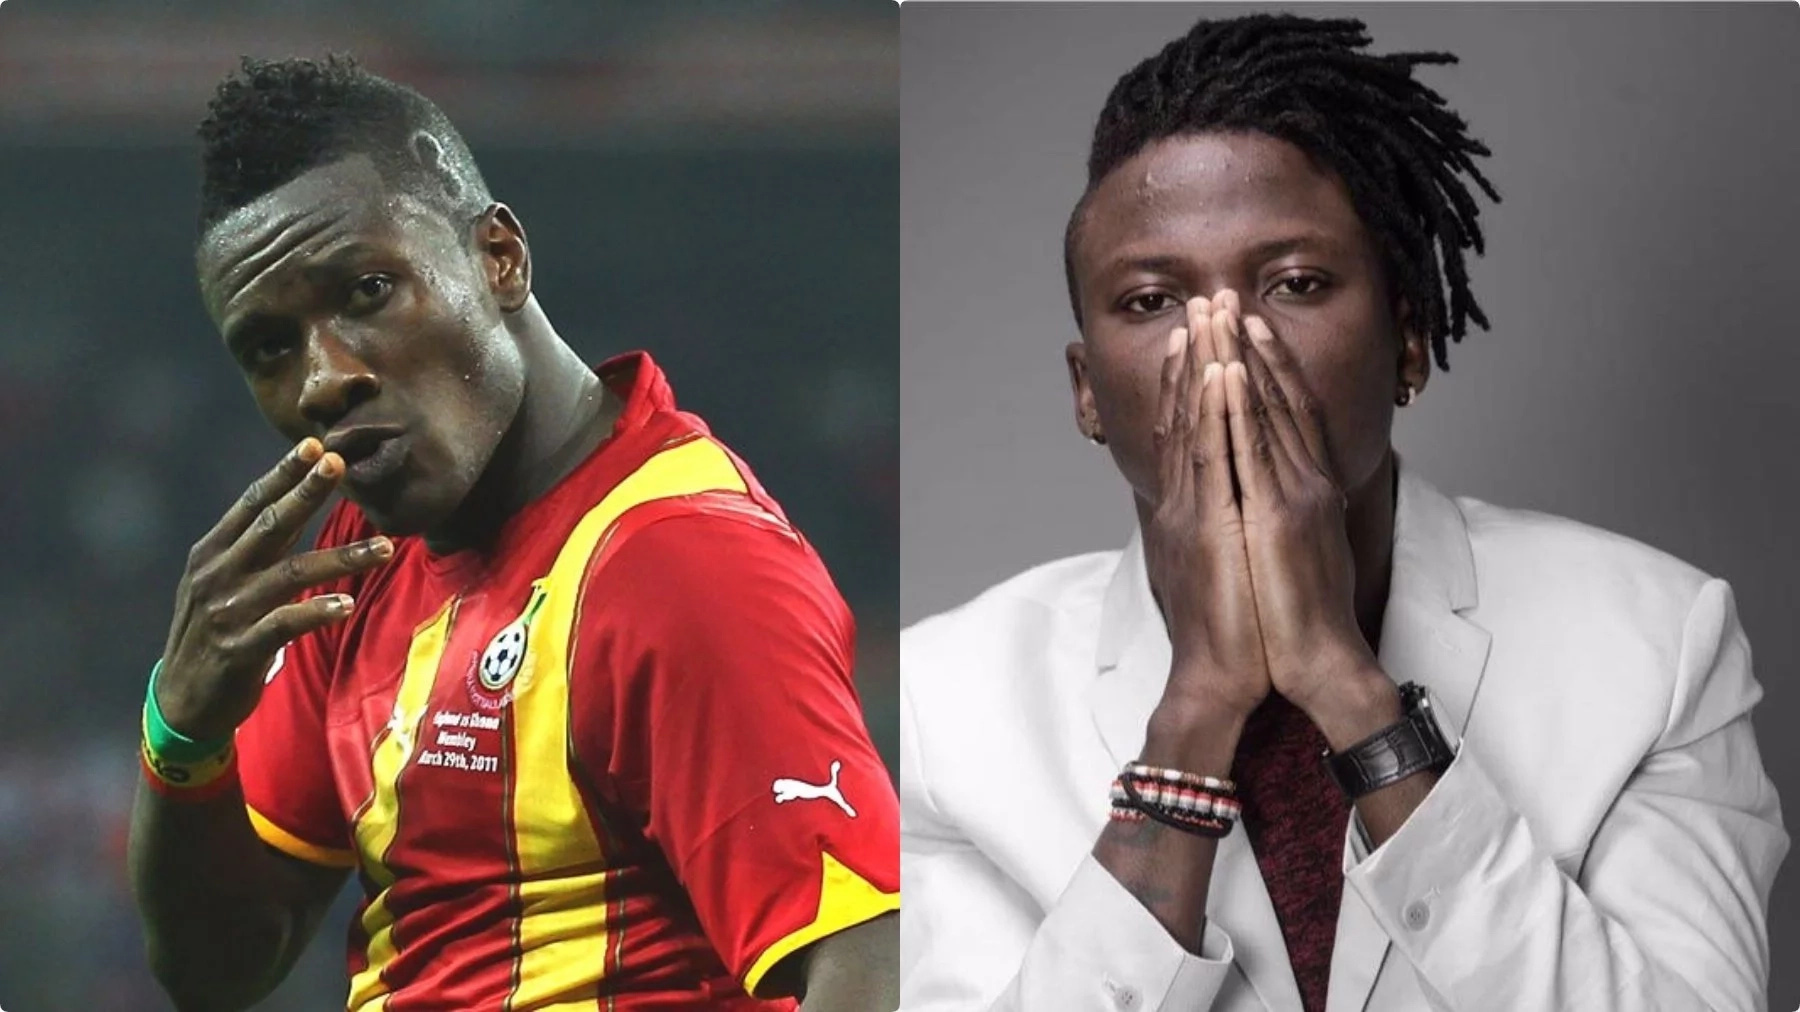 Asamoah Gyan(left) has denied reports he is set to pay Zylofon Media $2million as bailout for Stonebwoy(right)